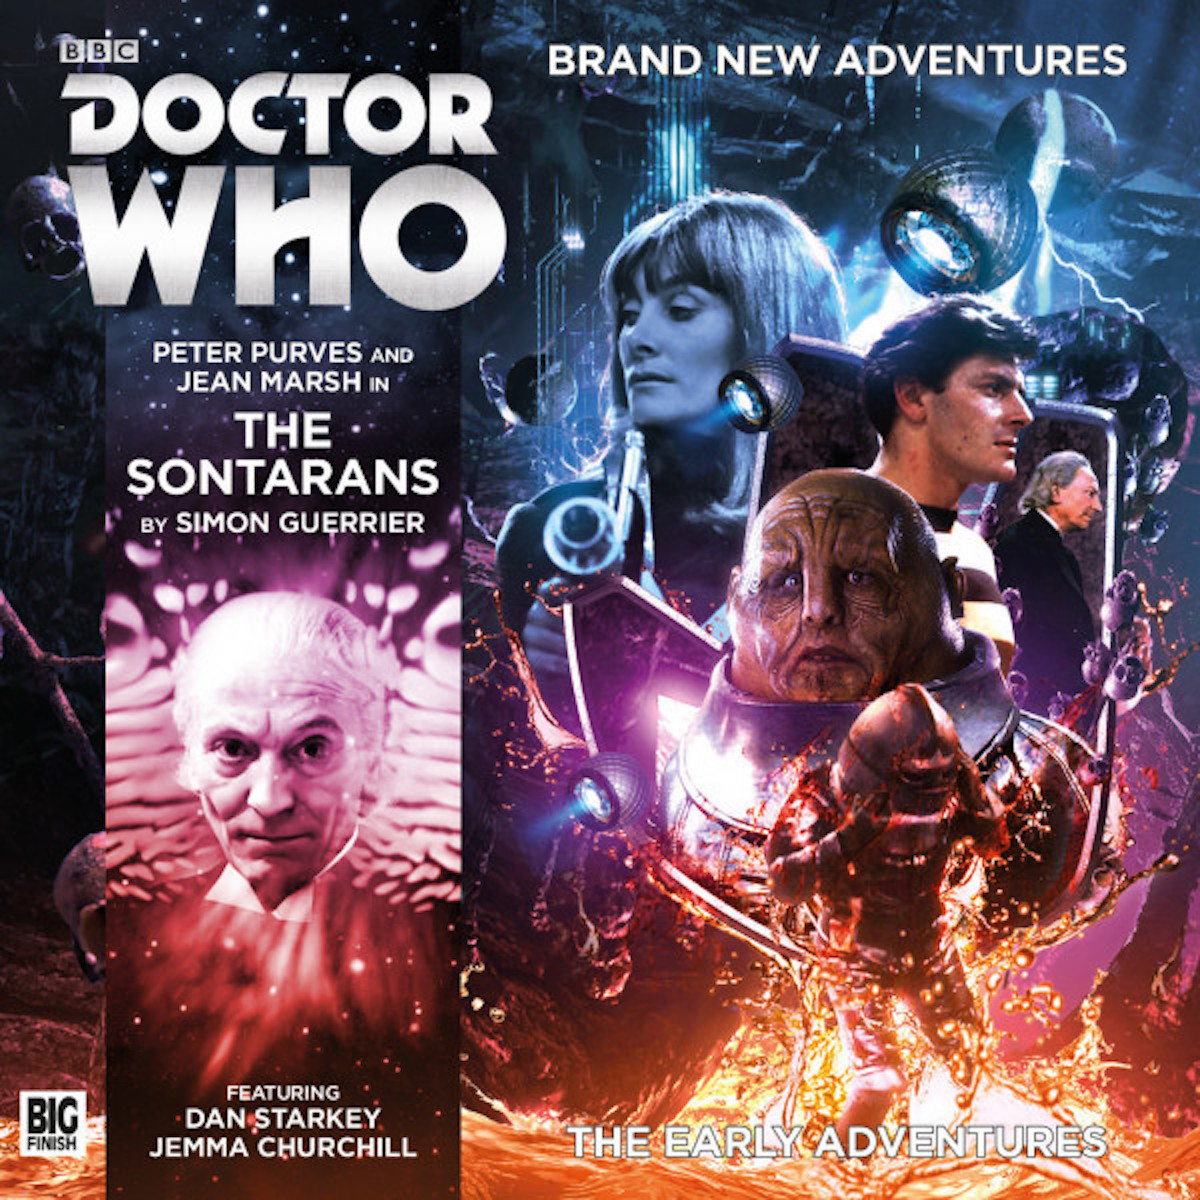 The Early Adventures: The Sontarans